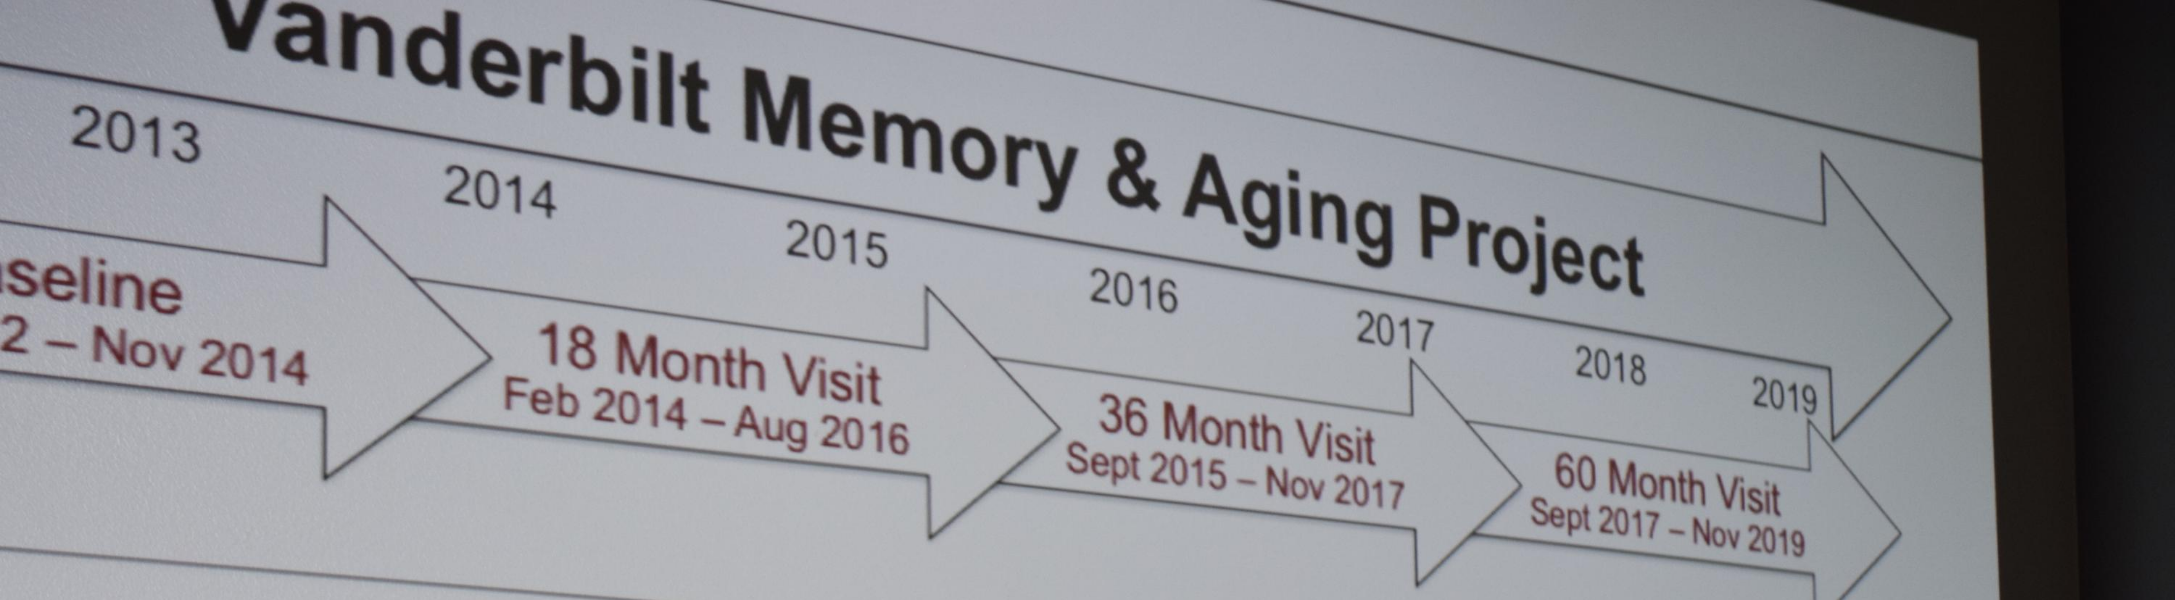 Vanderbilt Memory and Aging Project